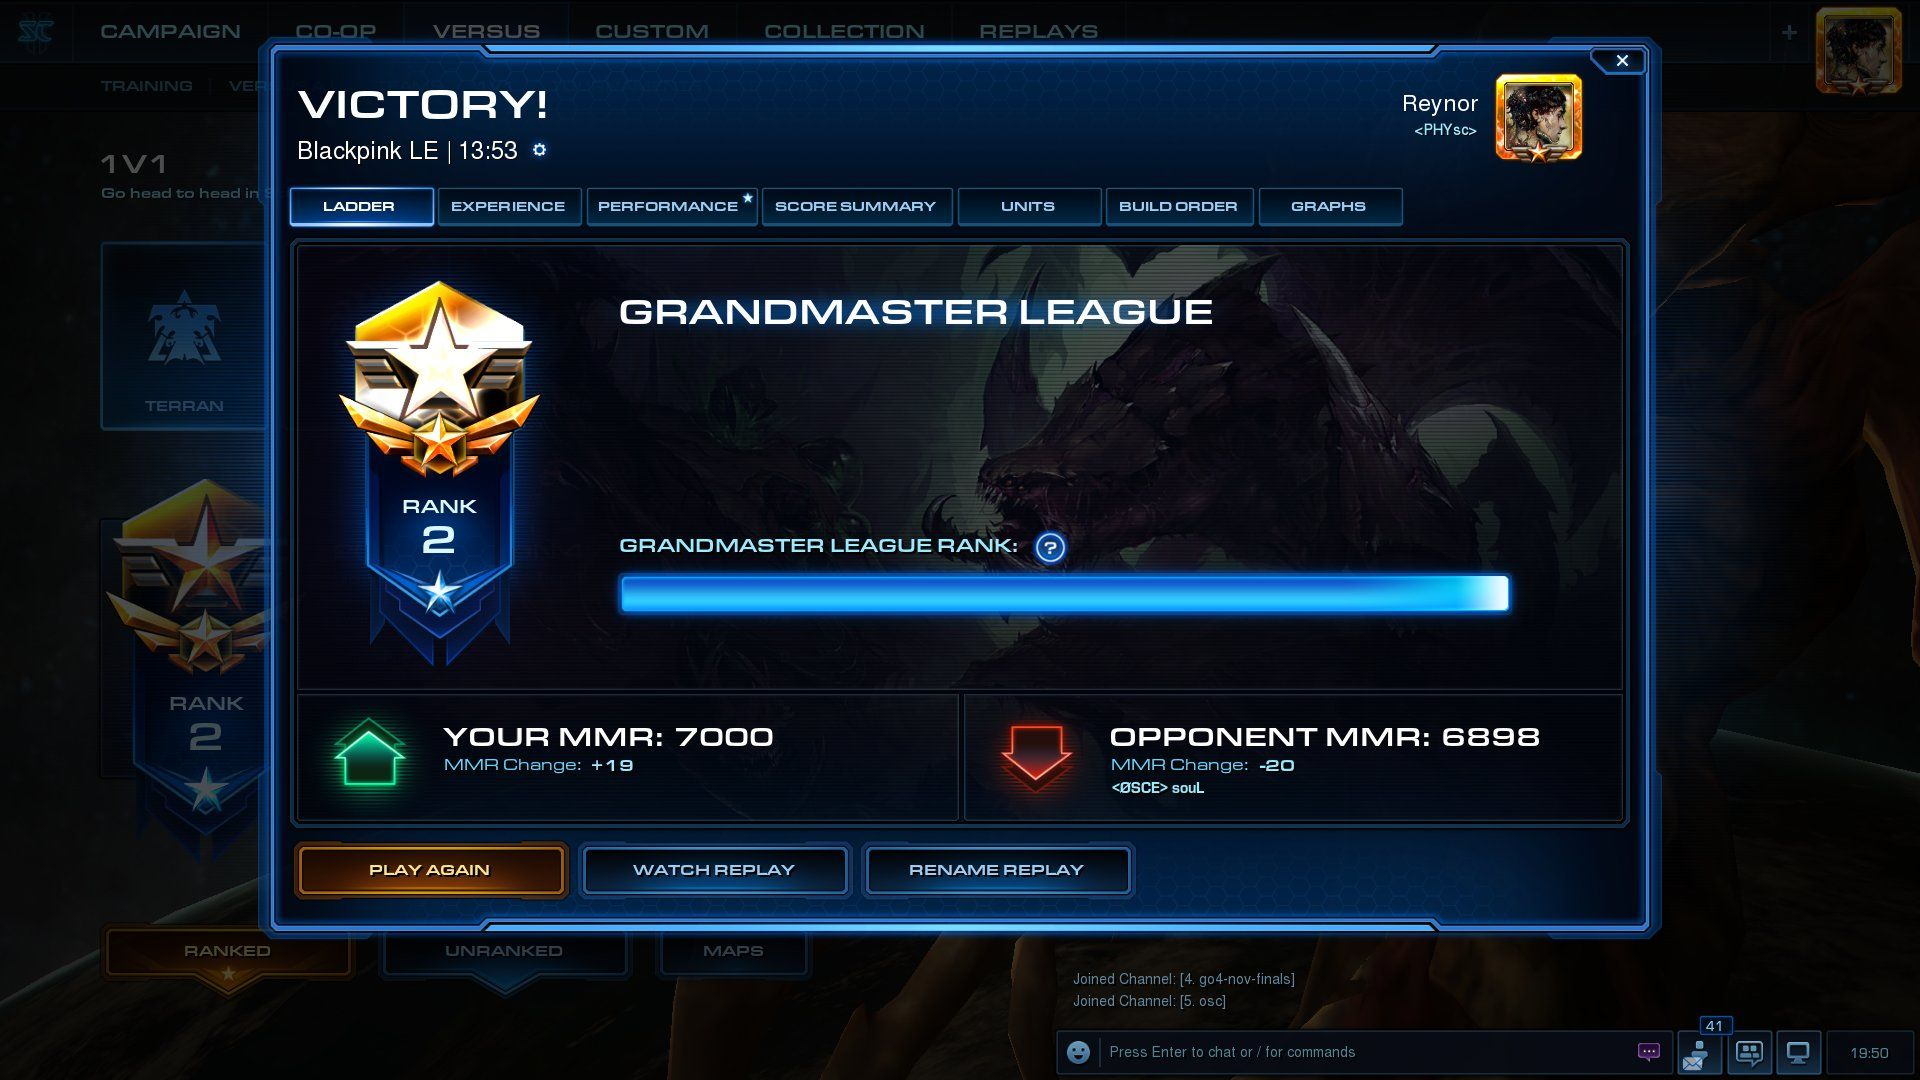 Reynor hits 7k MMR rank 2 in Europe and still can't play WCS this entire  year because of an incredibly moronic rule. #games #Starcraft #Starcraft2  #SC2 ...